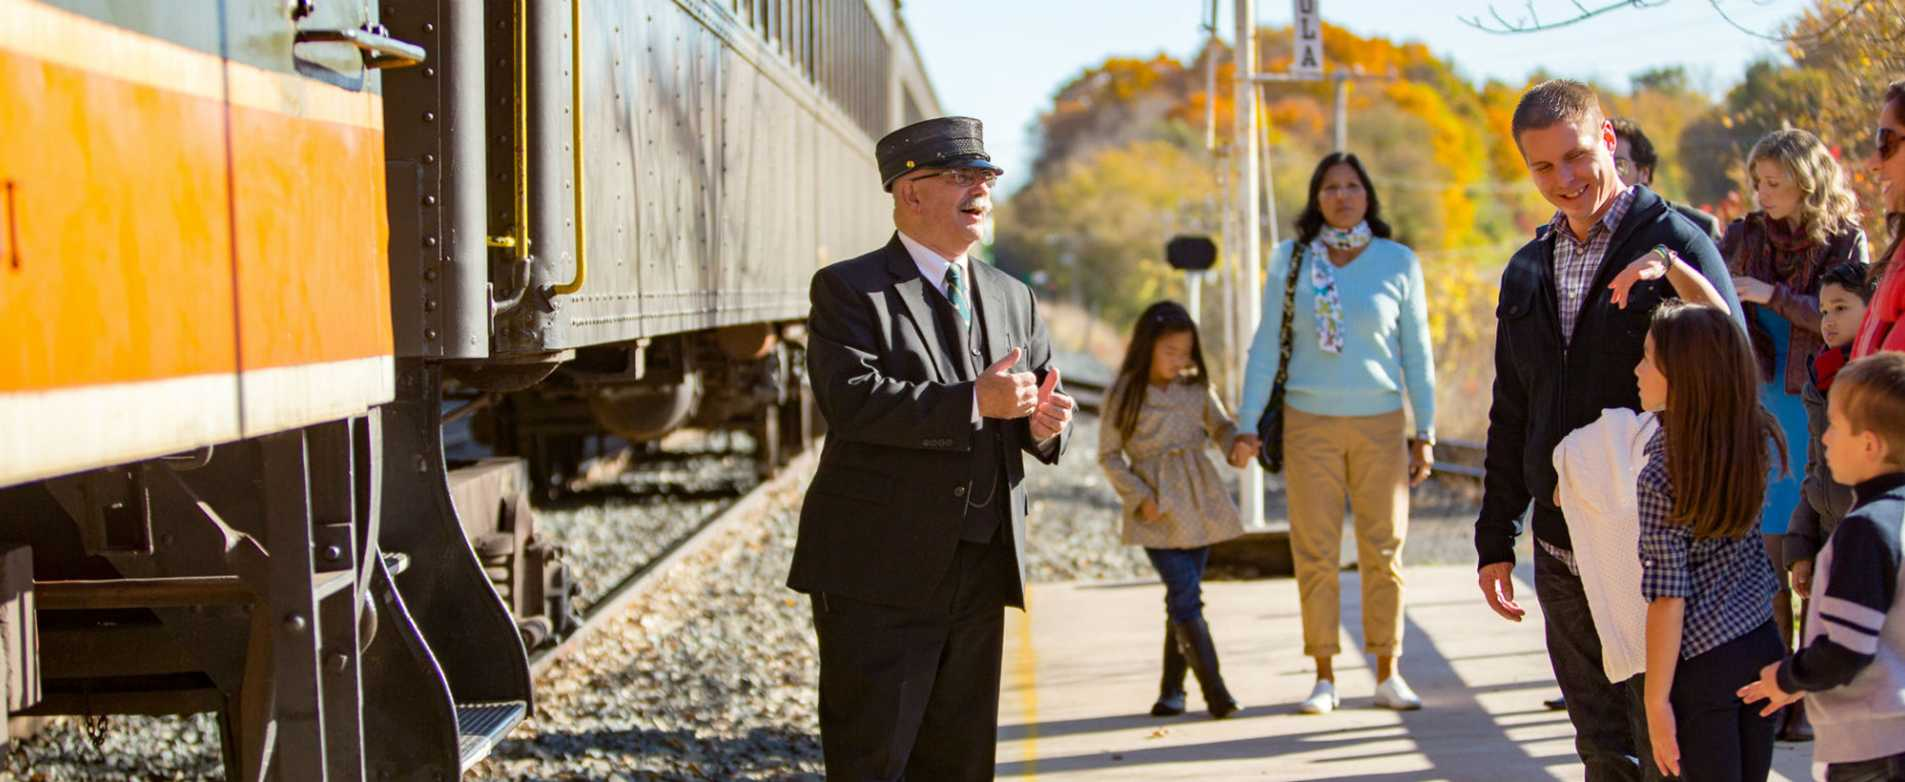 Train Conductor Gretting Families Outside Train